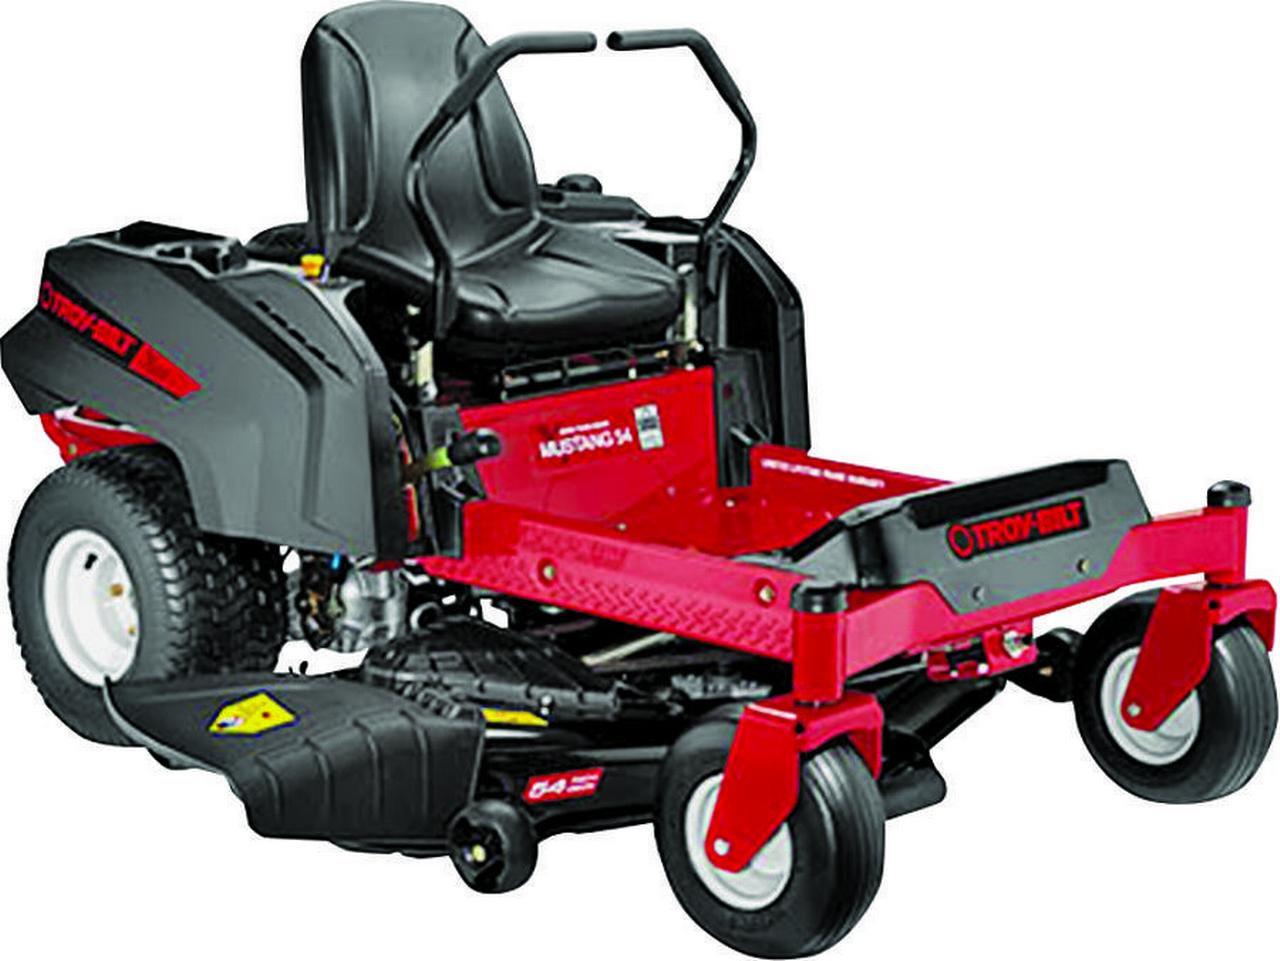 Troy-Bilt 17BDCACW066 Dual Hydro EZT Lawn Mower, 54 in W, 25 hp, 724 cc Briggs and Stratton, OVH Eng by MTD Products